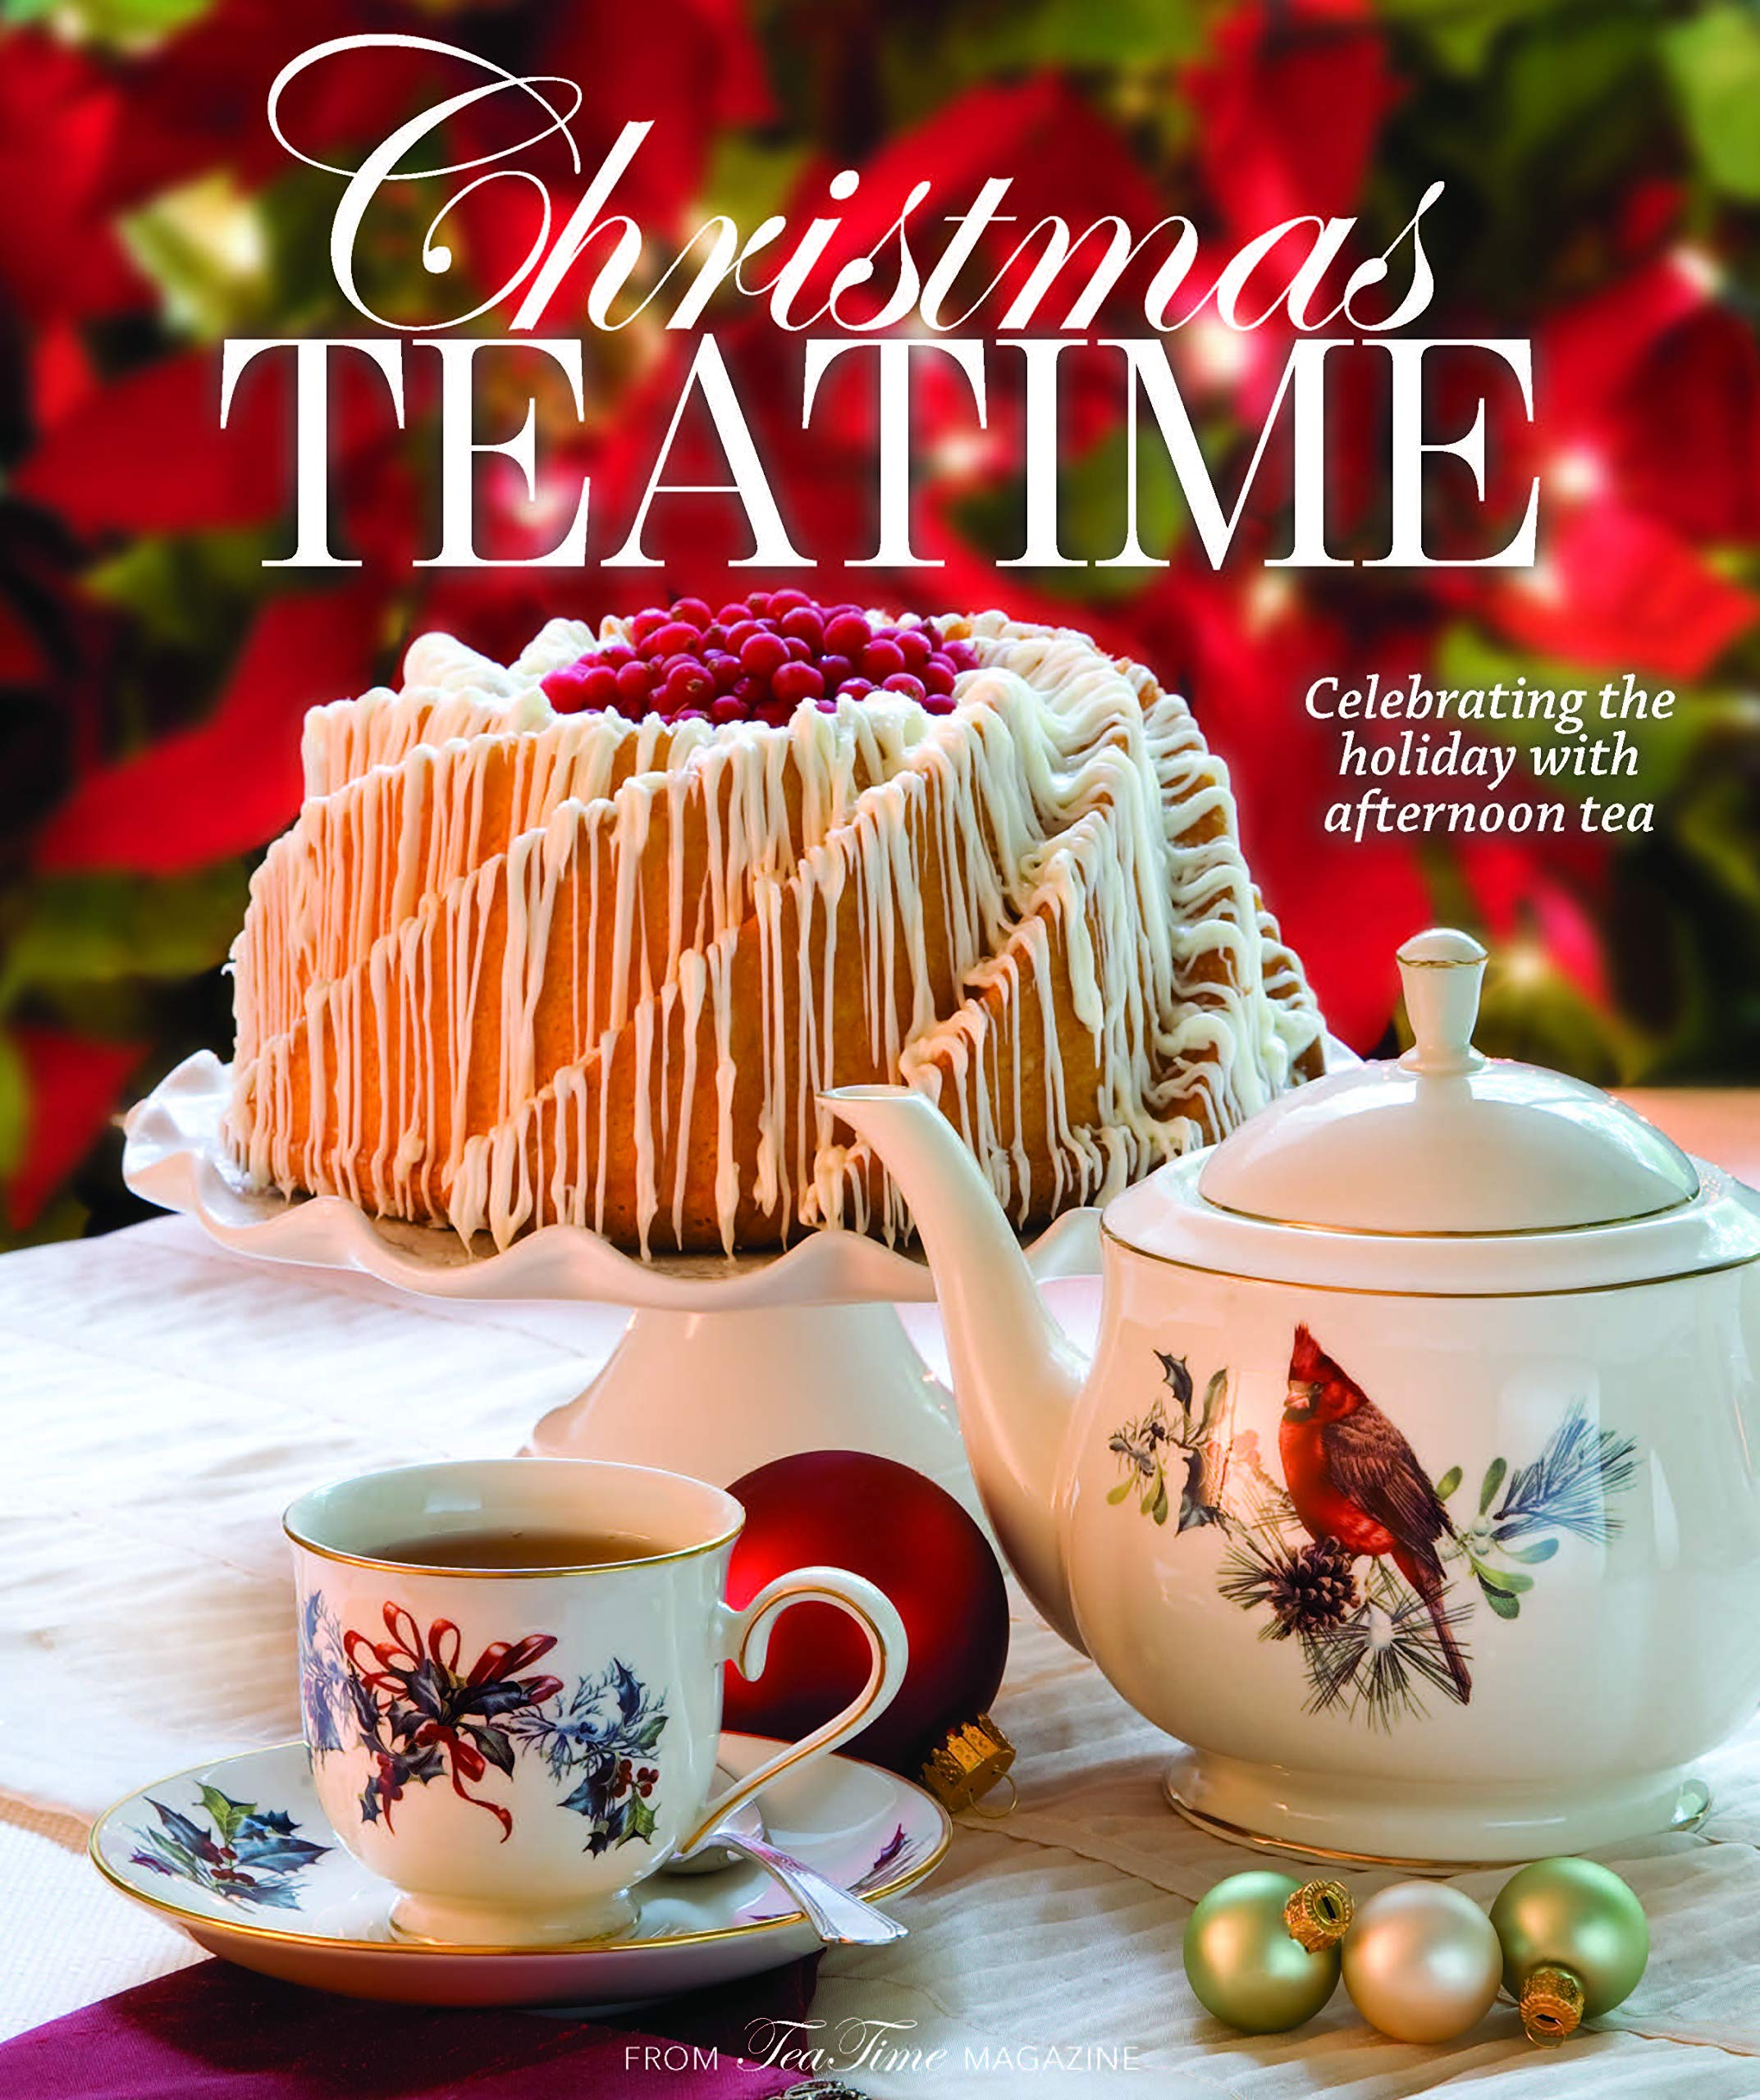 Christmas Teatime  Celebrating The Holiday With Afternoon Tea